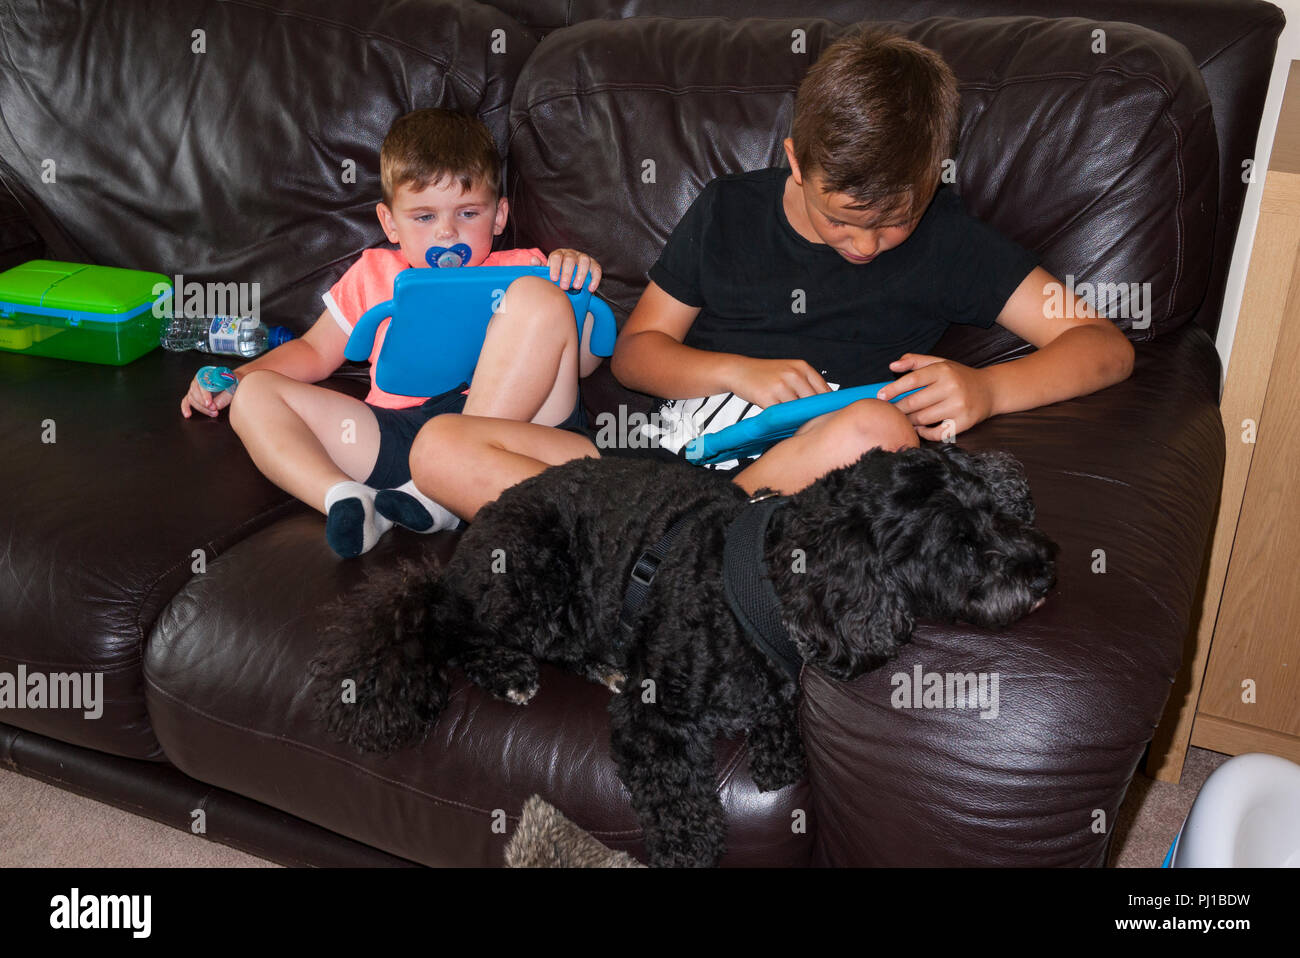 sofa pads uk plum colored two young boys looking at i sitting on a with cokerpoo dog england